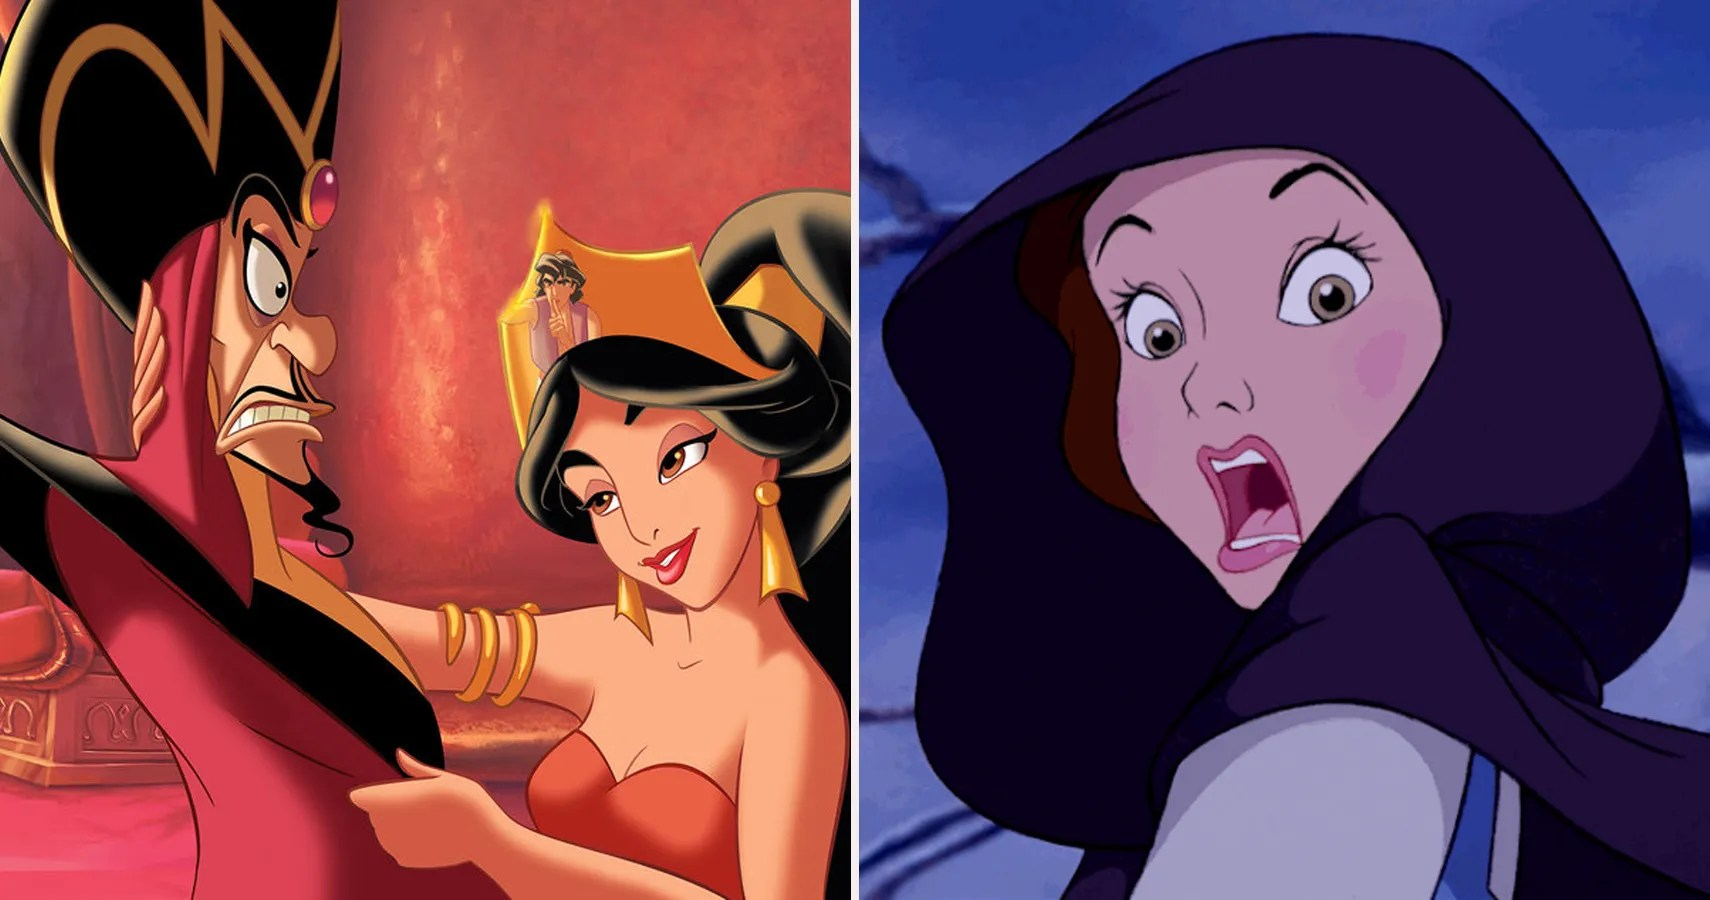 Hidden Messages In Disney Movies That Went Over Our Heads